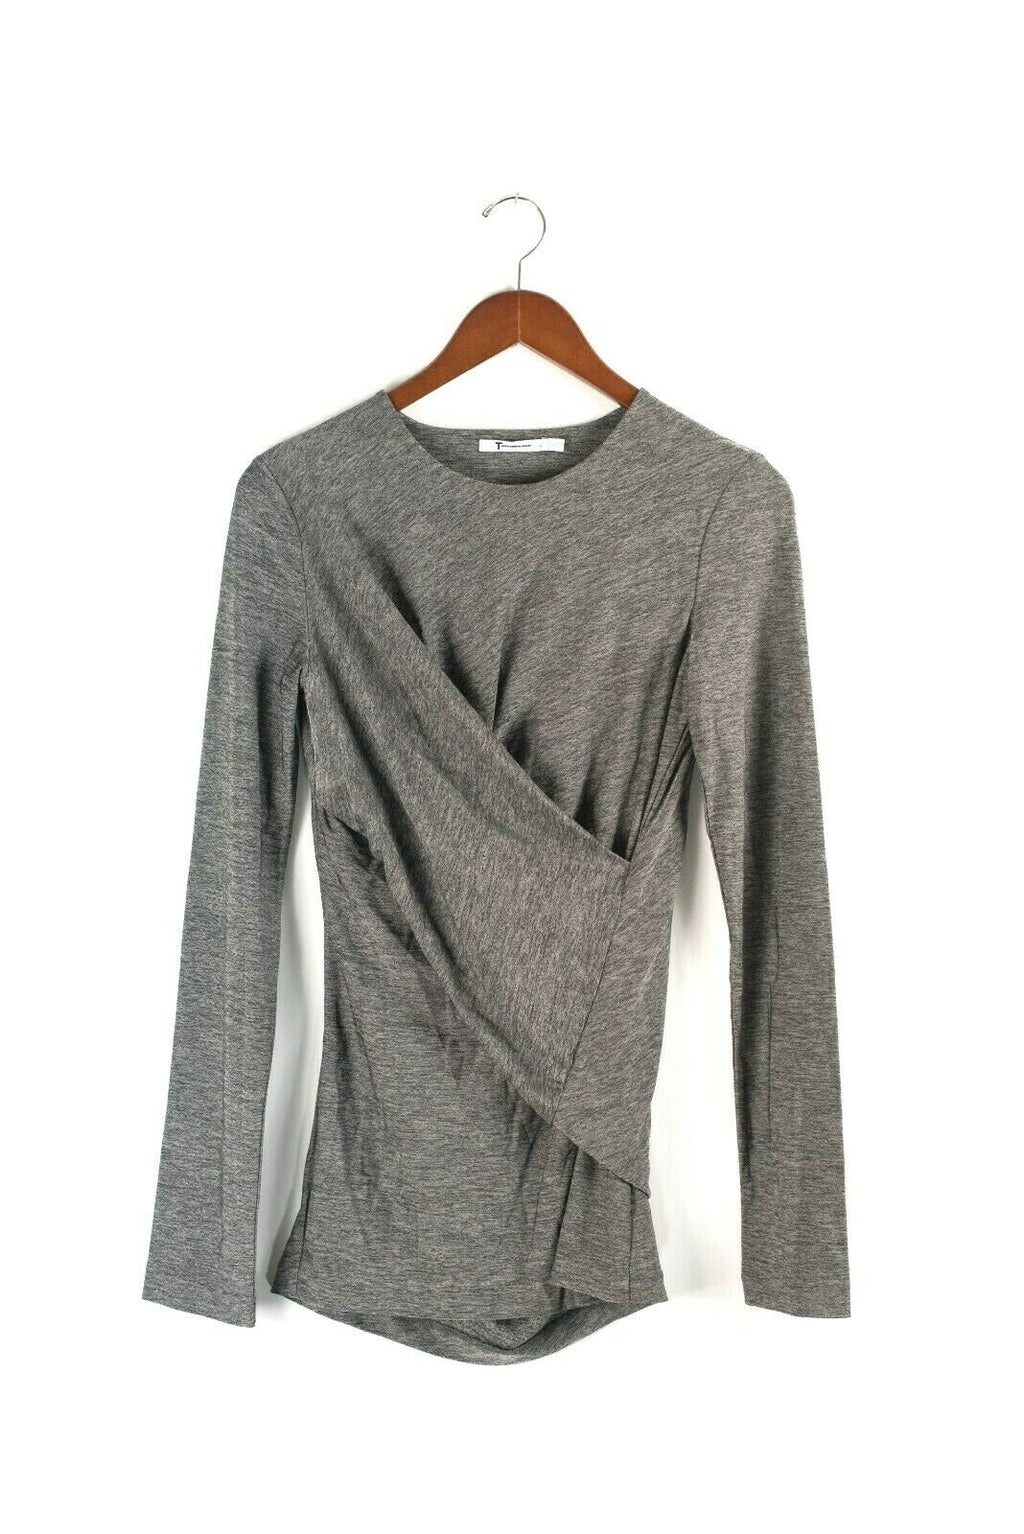 T by Alexander Wang Womens M Grey Top Marled Wrap Front Knit Long Sleeve Blouse